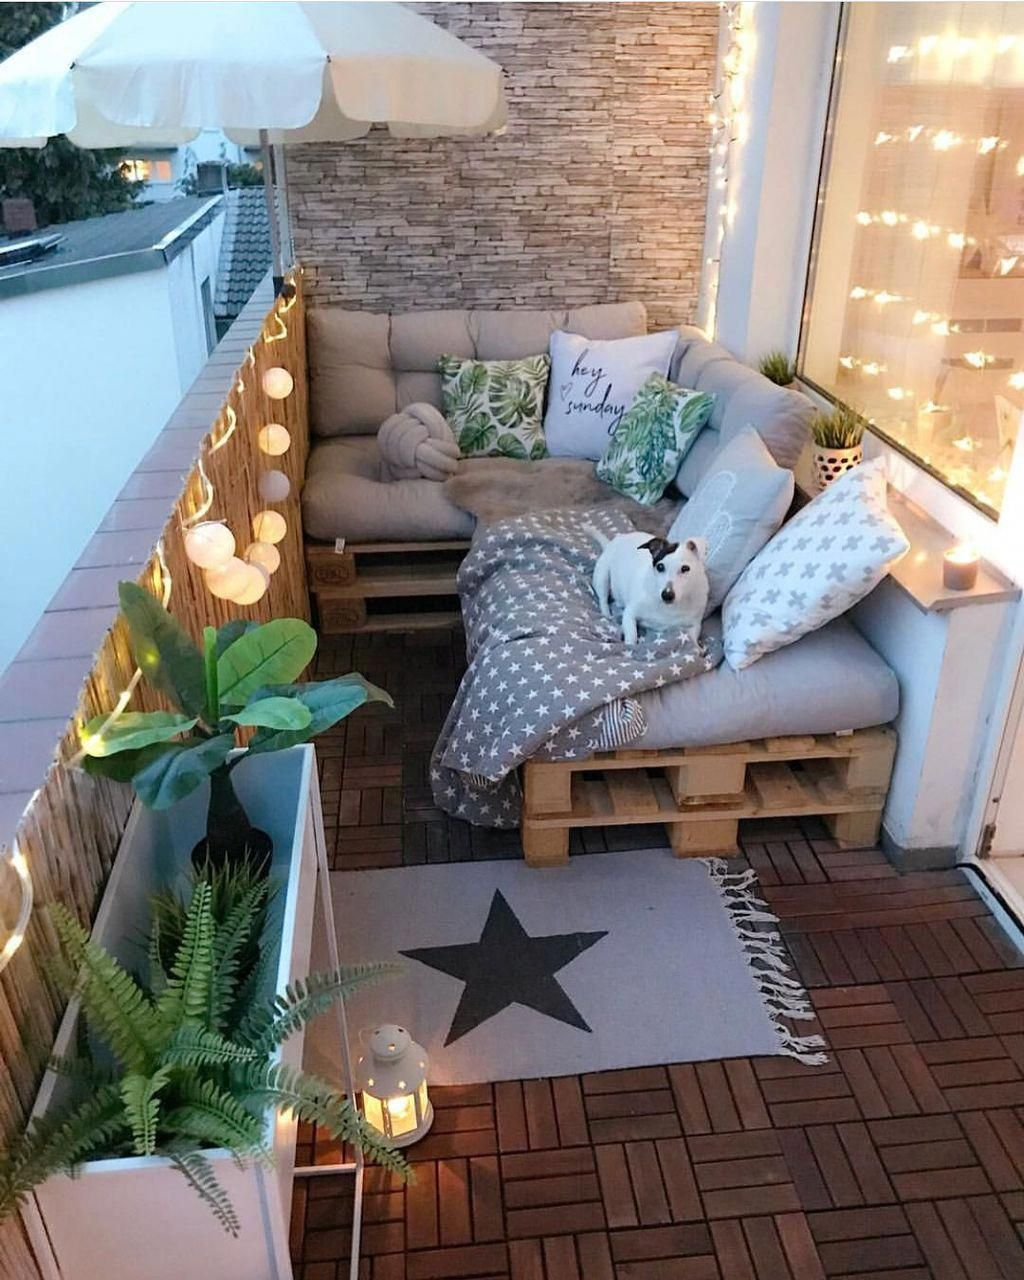 wellpainted small balcony decor first apartment decorating apartment balcony decorating on christmas balcony decorations apartment patio id=42870